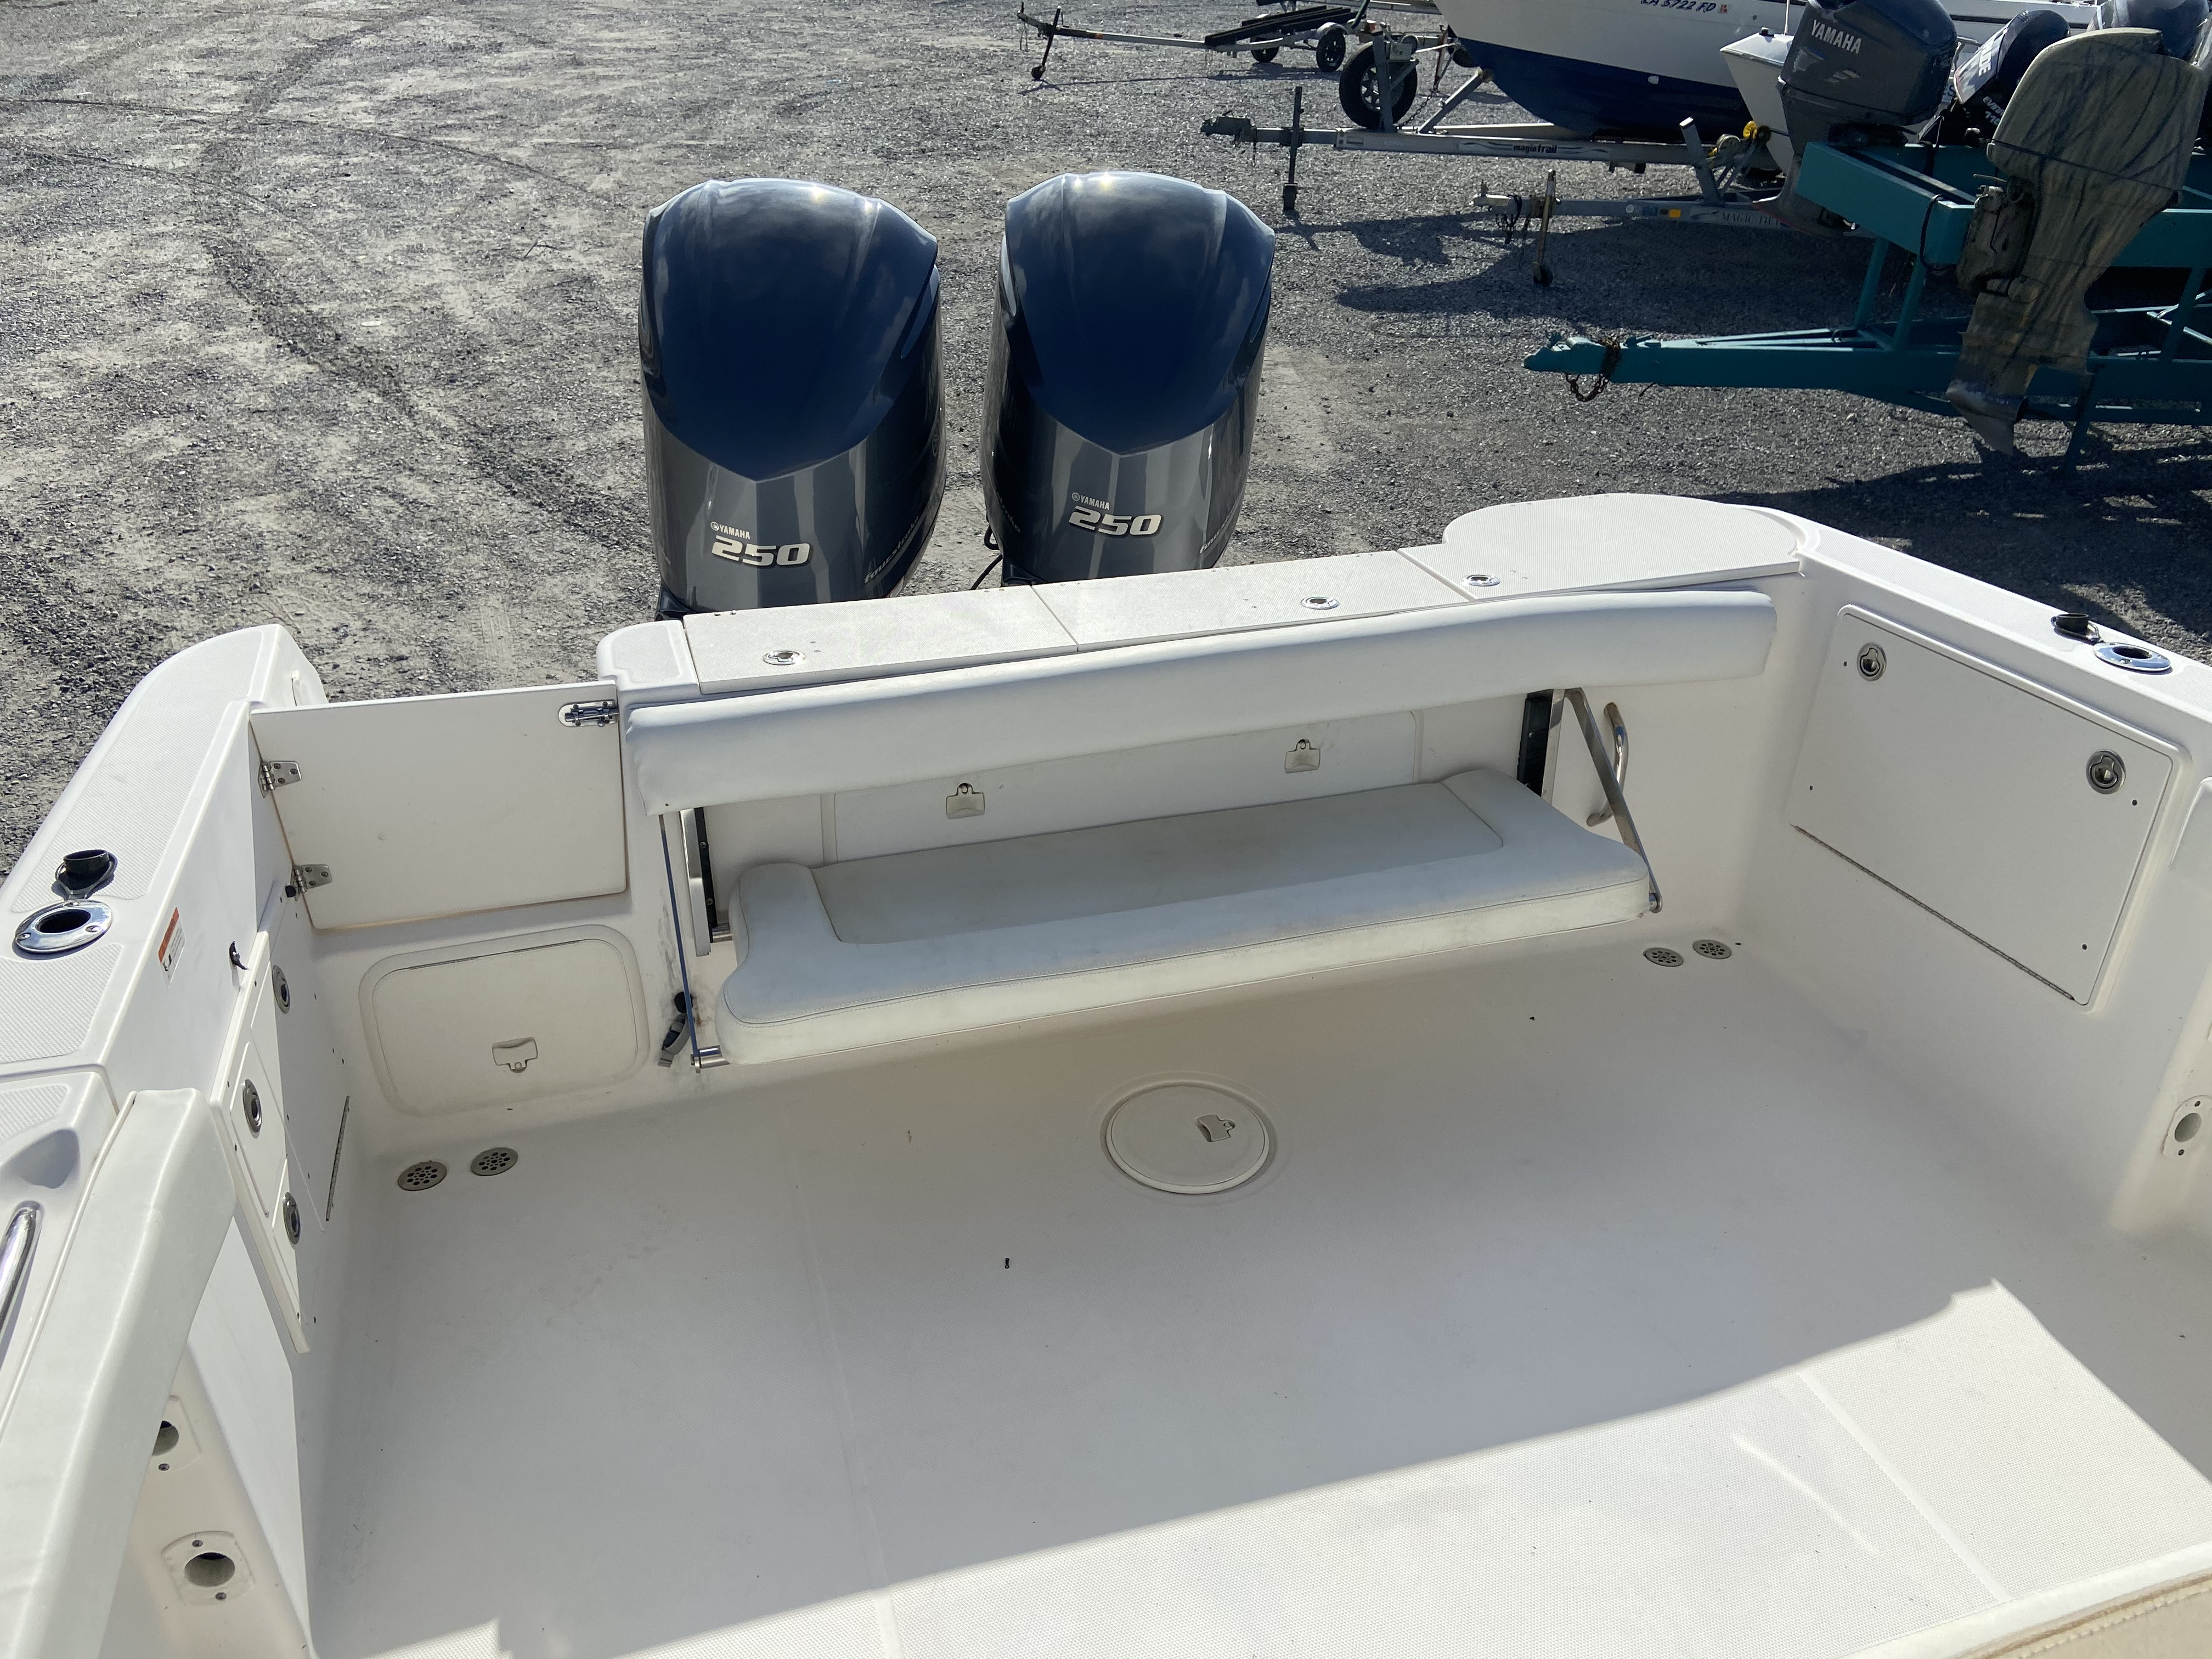 2006 Wellcraft boat for sale, model of the boat is 352 Sport & Image # 12 of 27